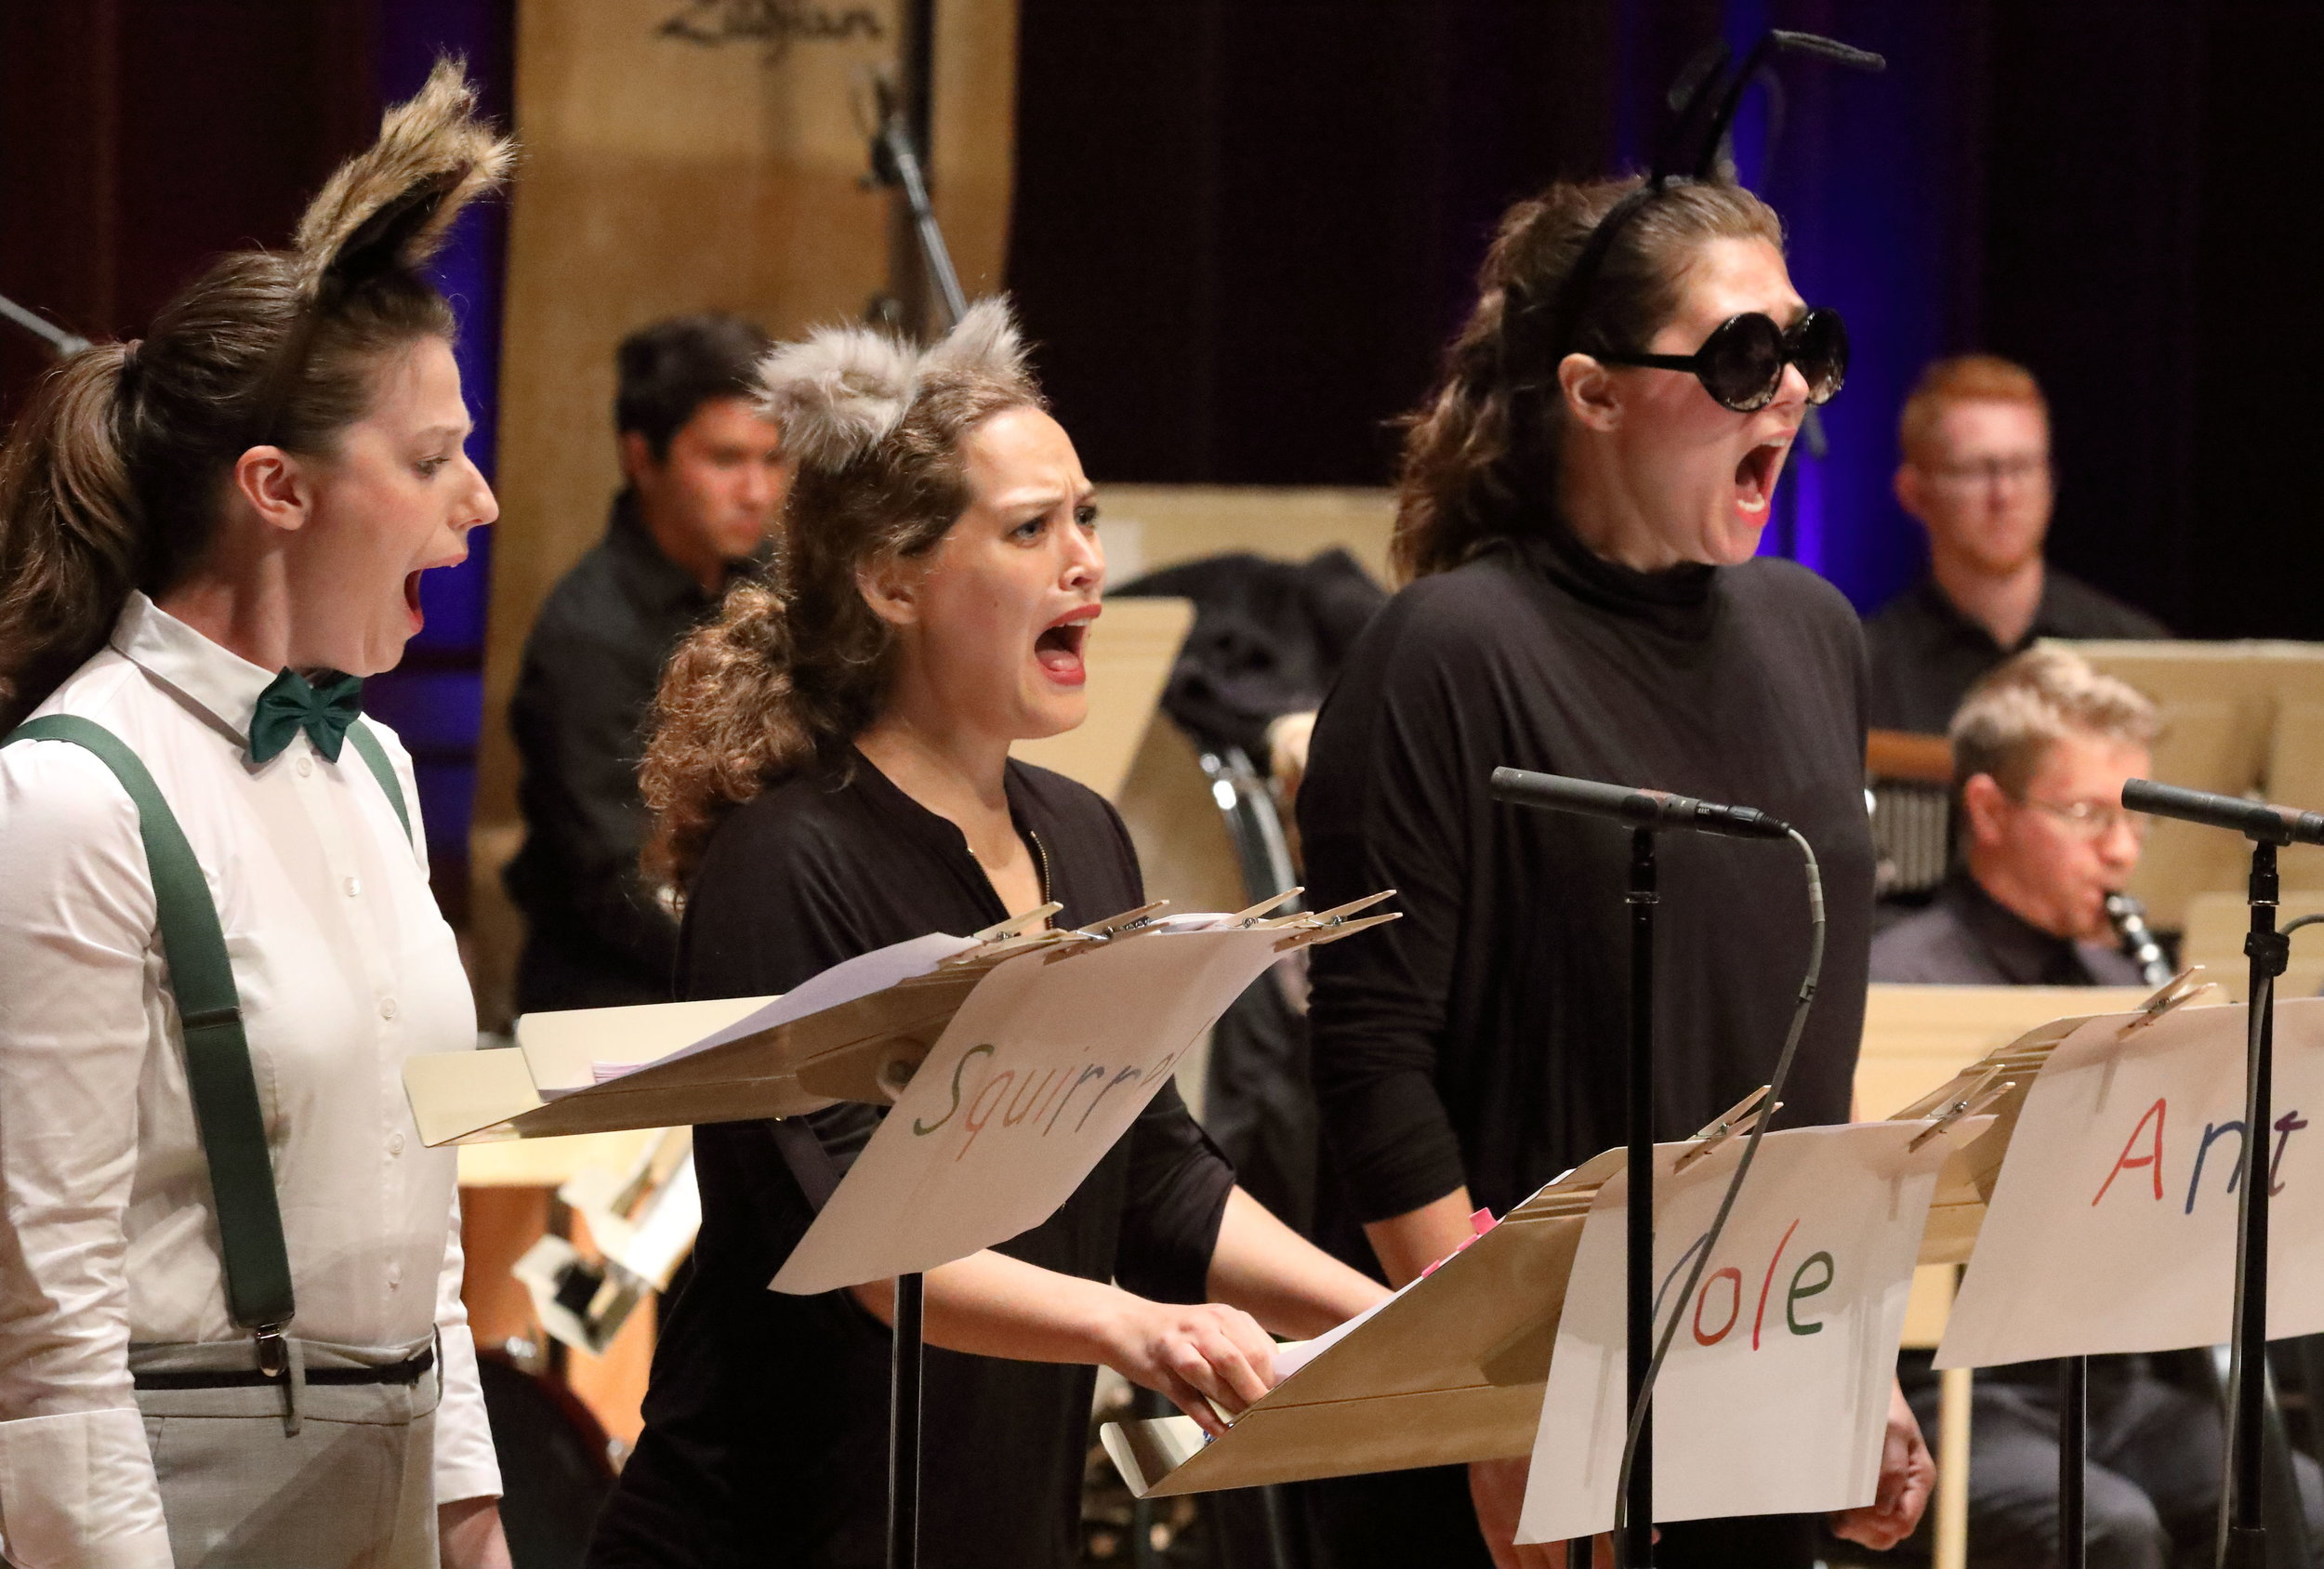 A scene from Richard Ayres's The Cricket Recovers at Tanglewood's Festival of Contemporary Music: TMC vocal fellows Kameryn Lueng, Emily Helenbrook, and Chloe Schaaf (left to right; Hilary Scott photograph).